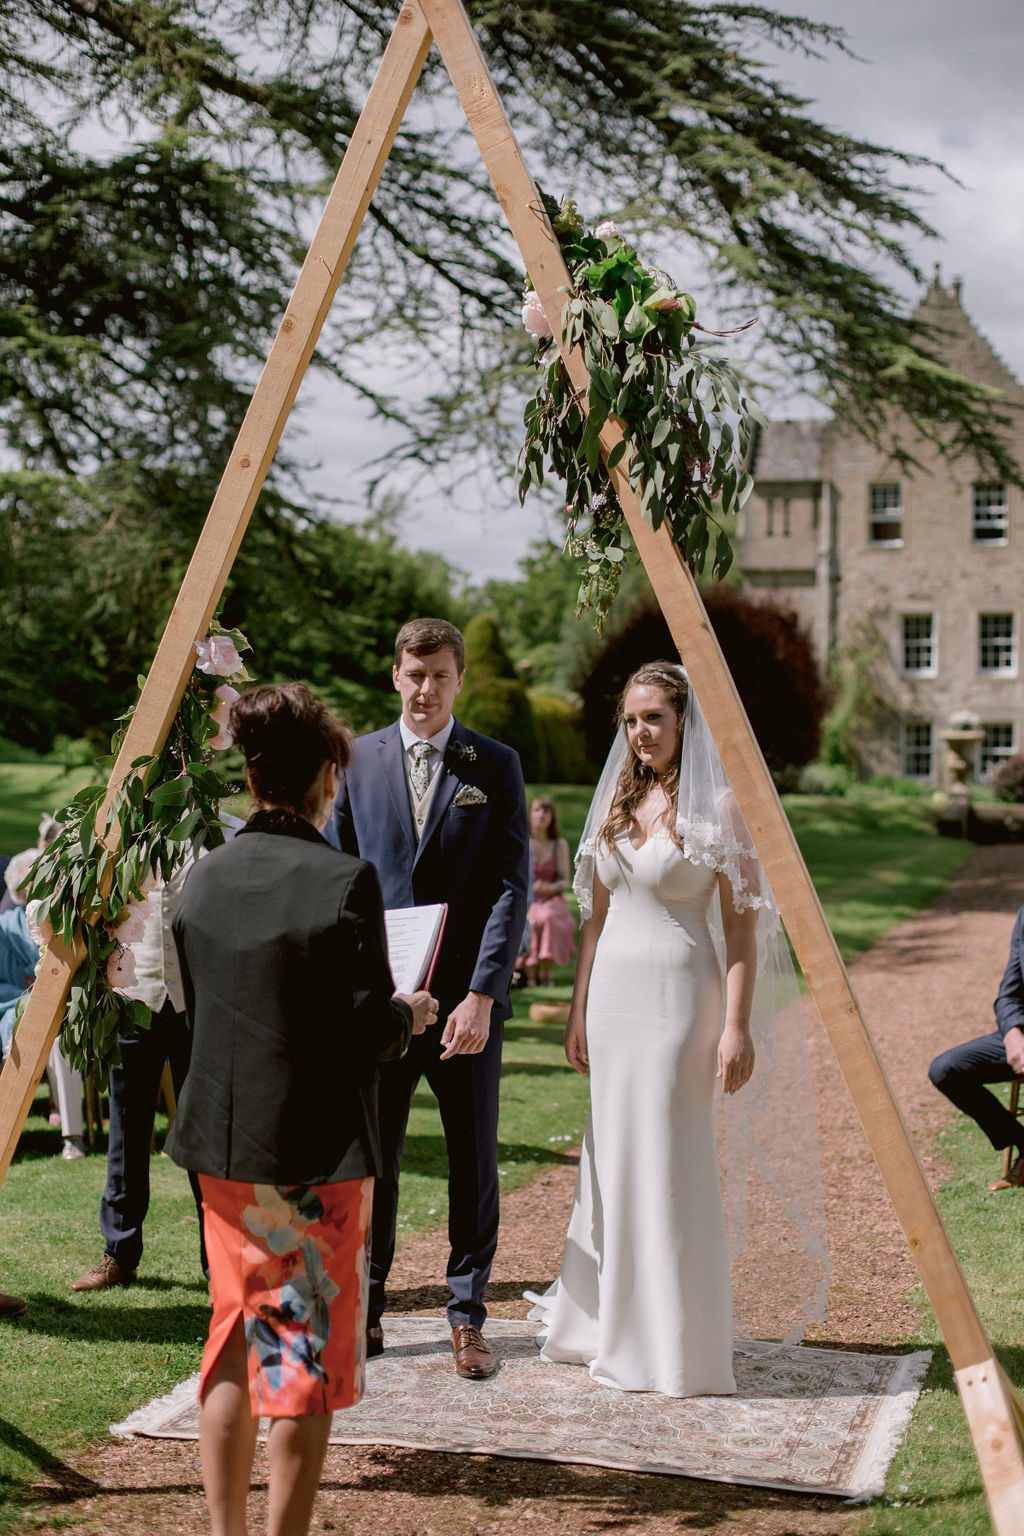 Triangular wedding arch | Kirknewton House Wedding